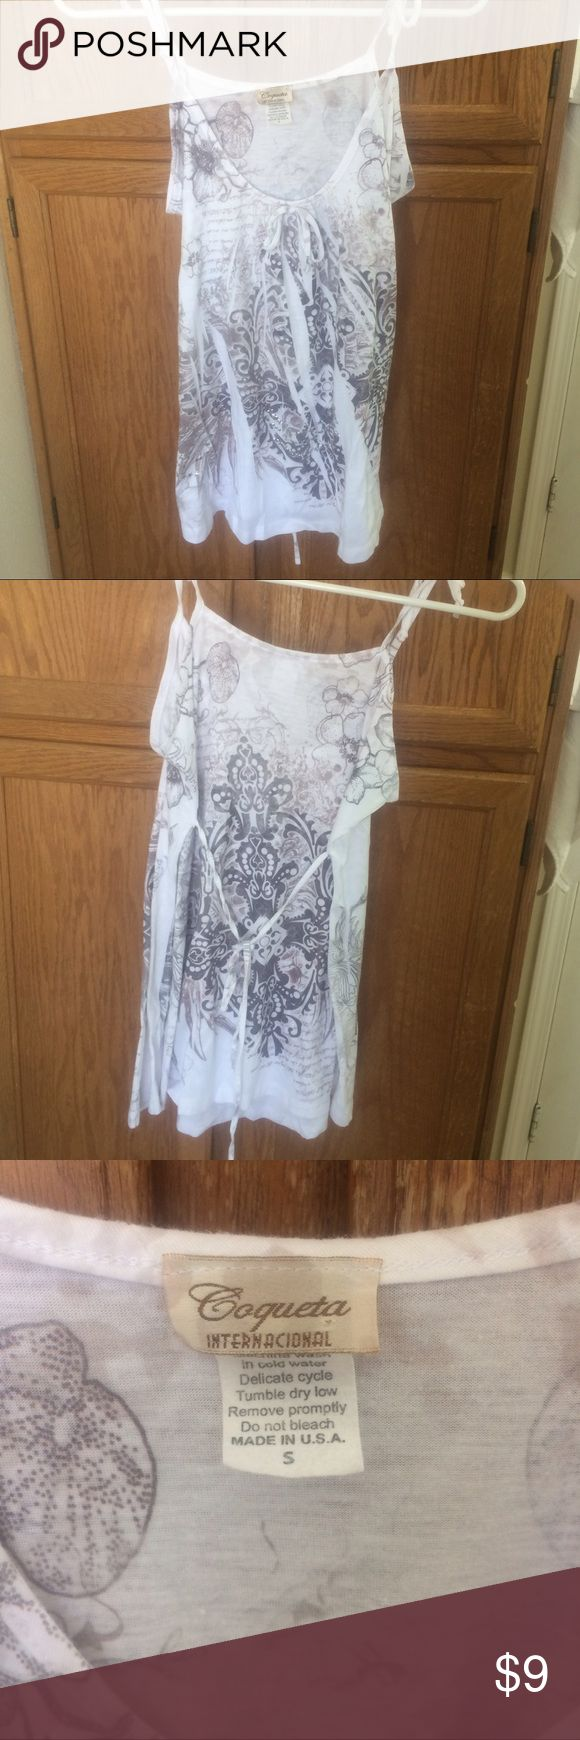 Coqueta Internacional White strappy top White strappy top. Size small. Made in the U.S.A No stains in good condition. coquet internacional Tops Camisoles